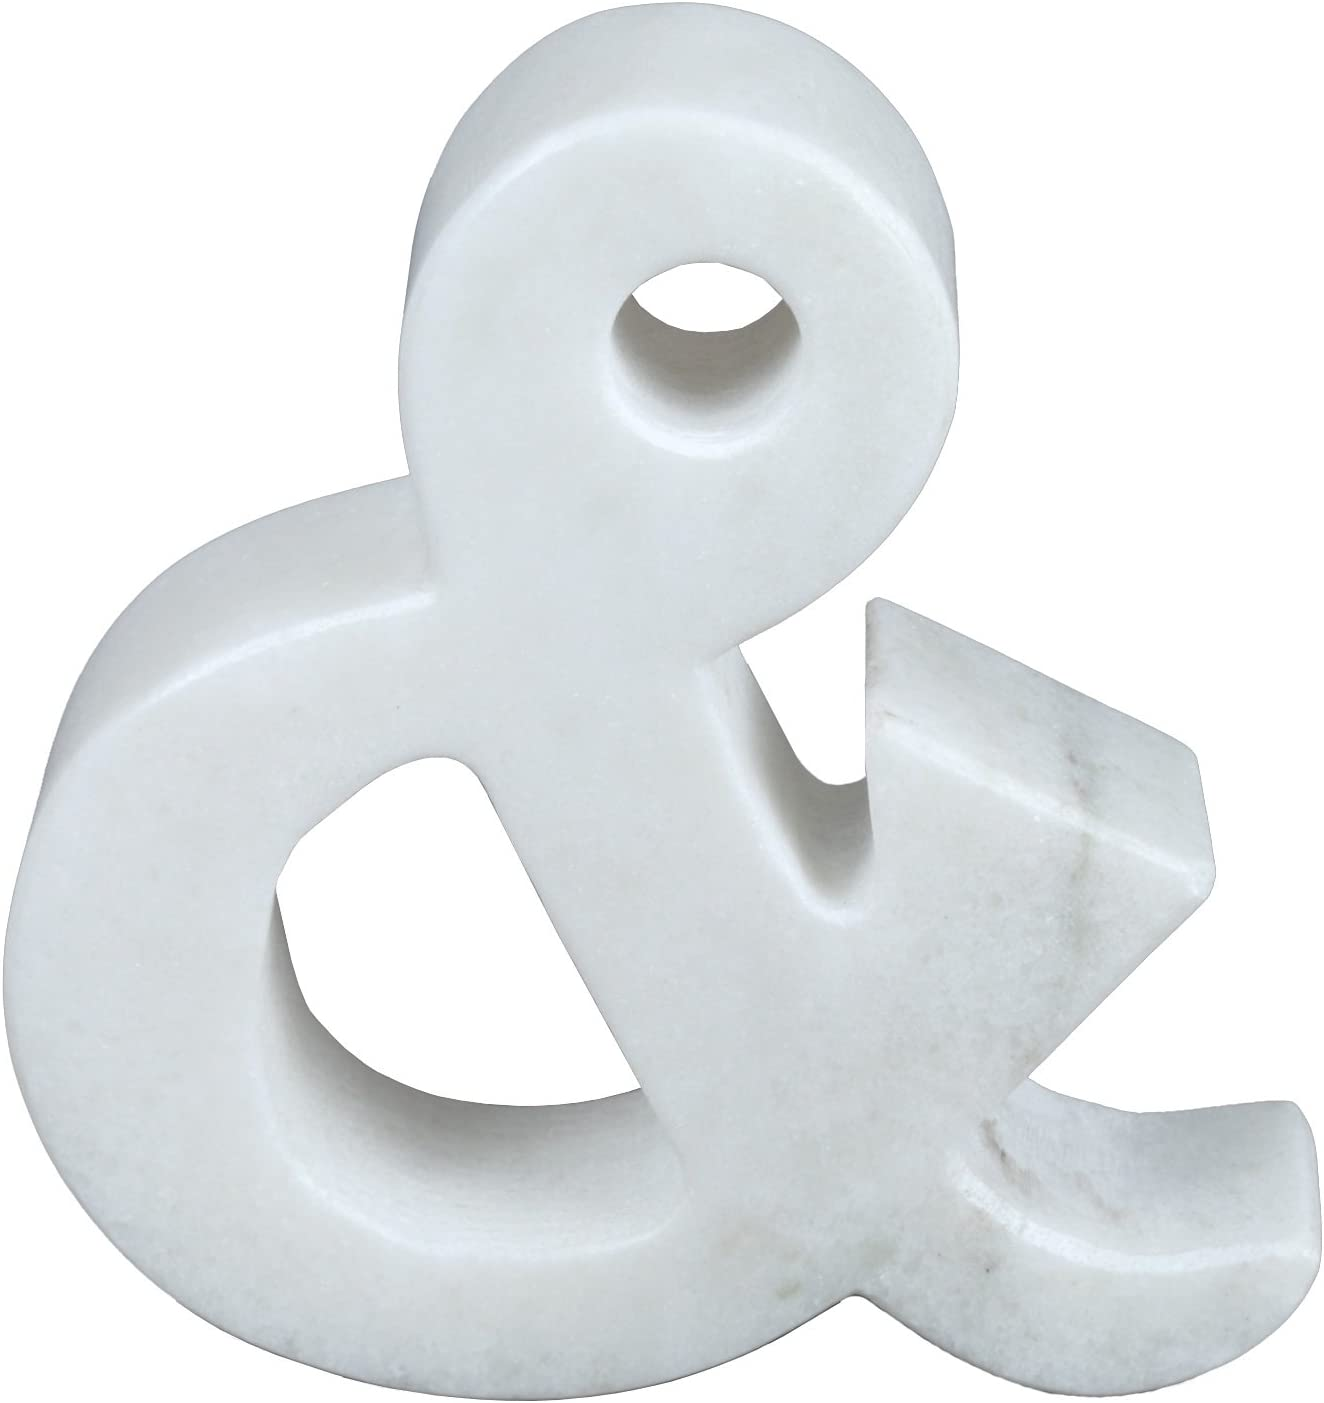 """Creative Home 74864 Natural Marble Stone Letter Ampersand, Bookends, Paper Weight, 5.5"""" W x 5-7/8"""" H, 1-1/2"""" D, Off-White (patterns may very)"""